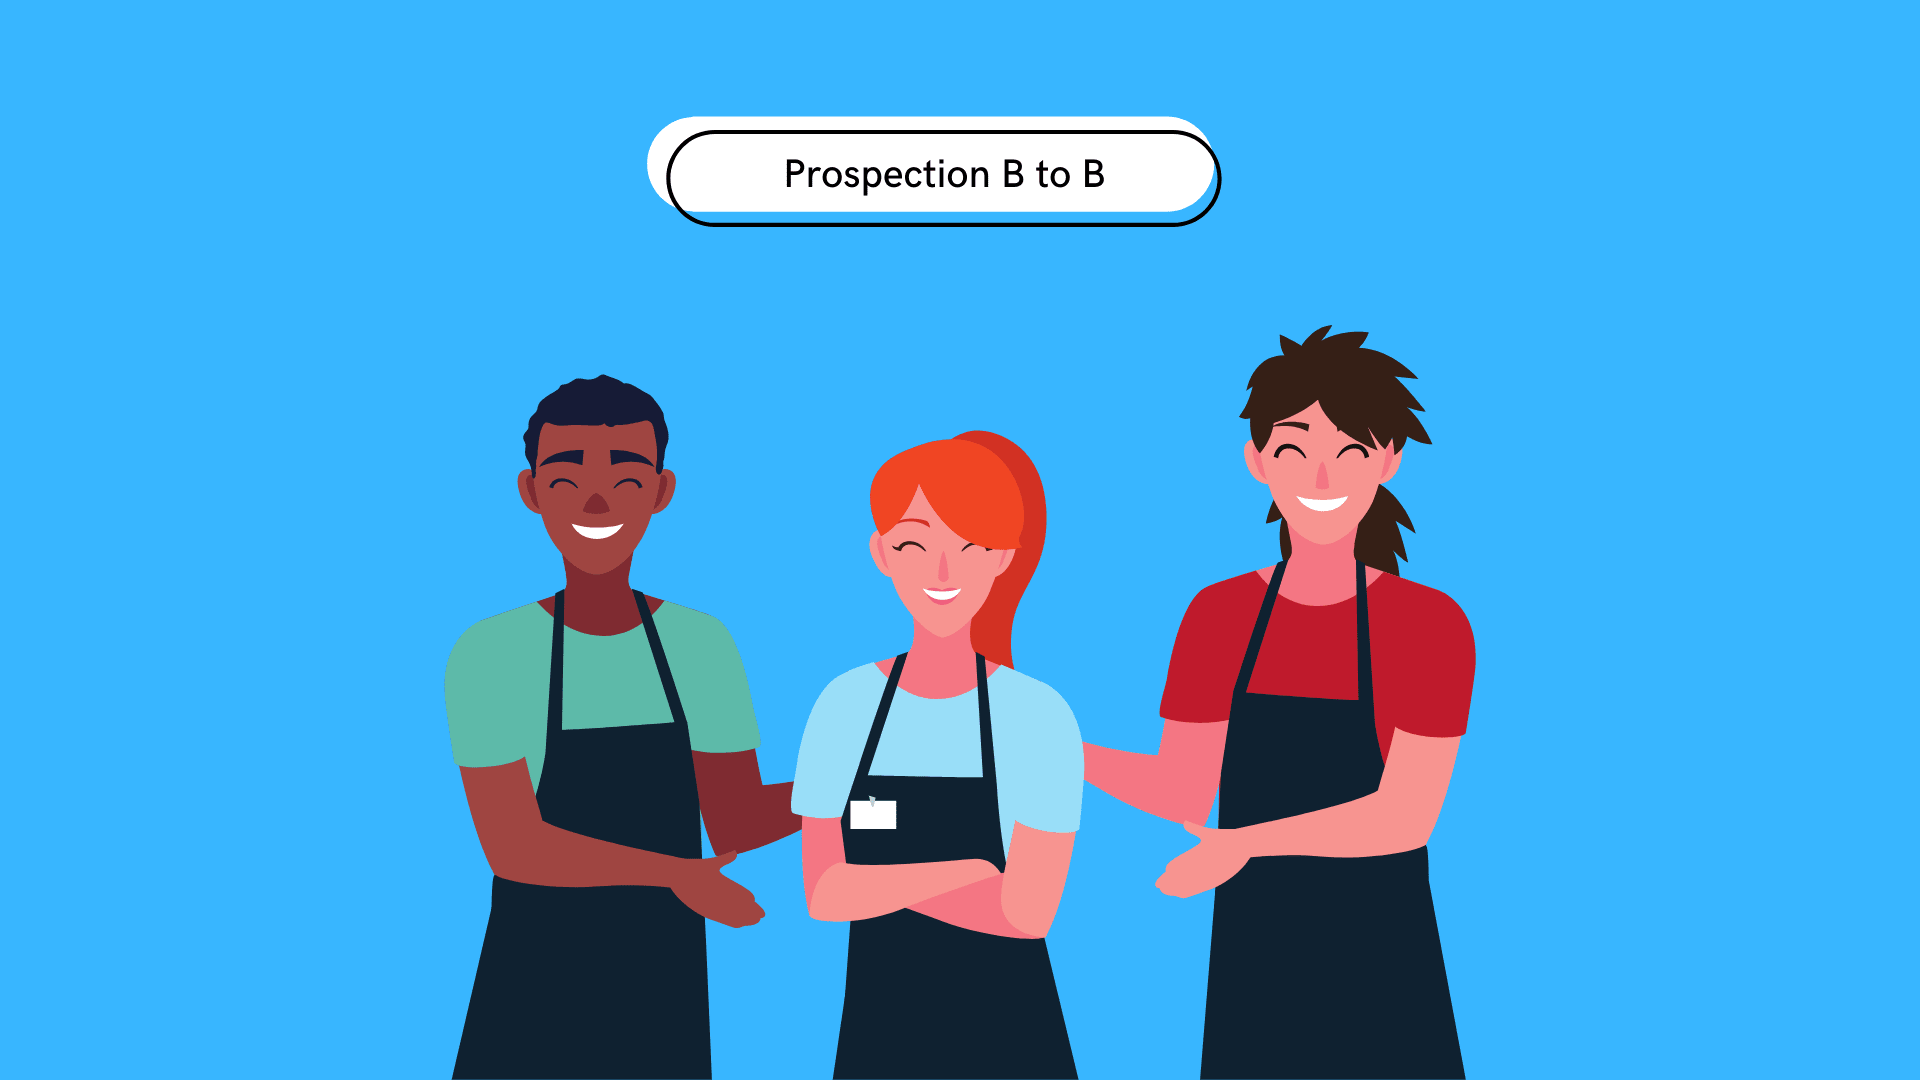 Prospection B to B